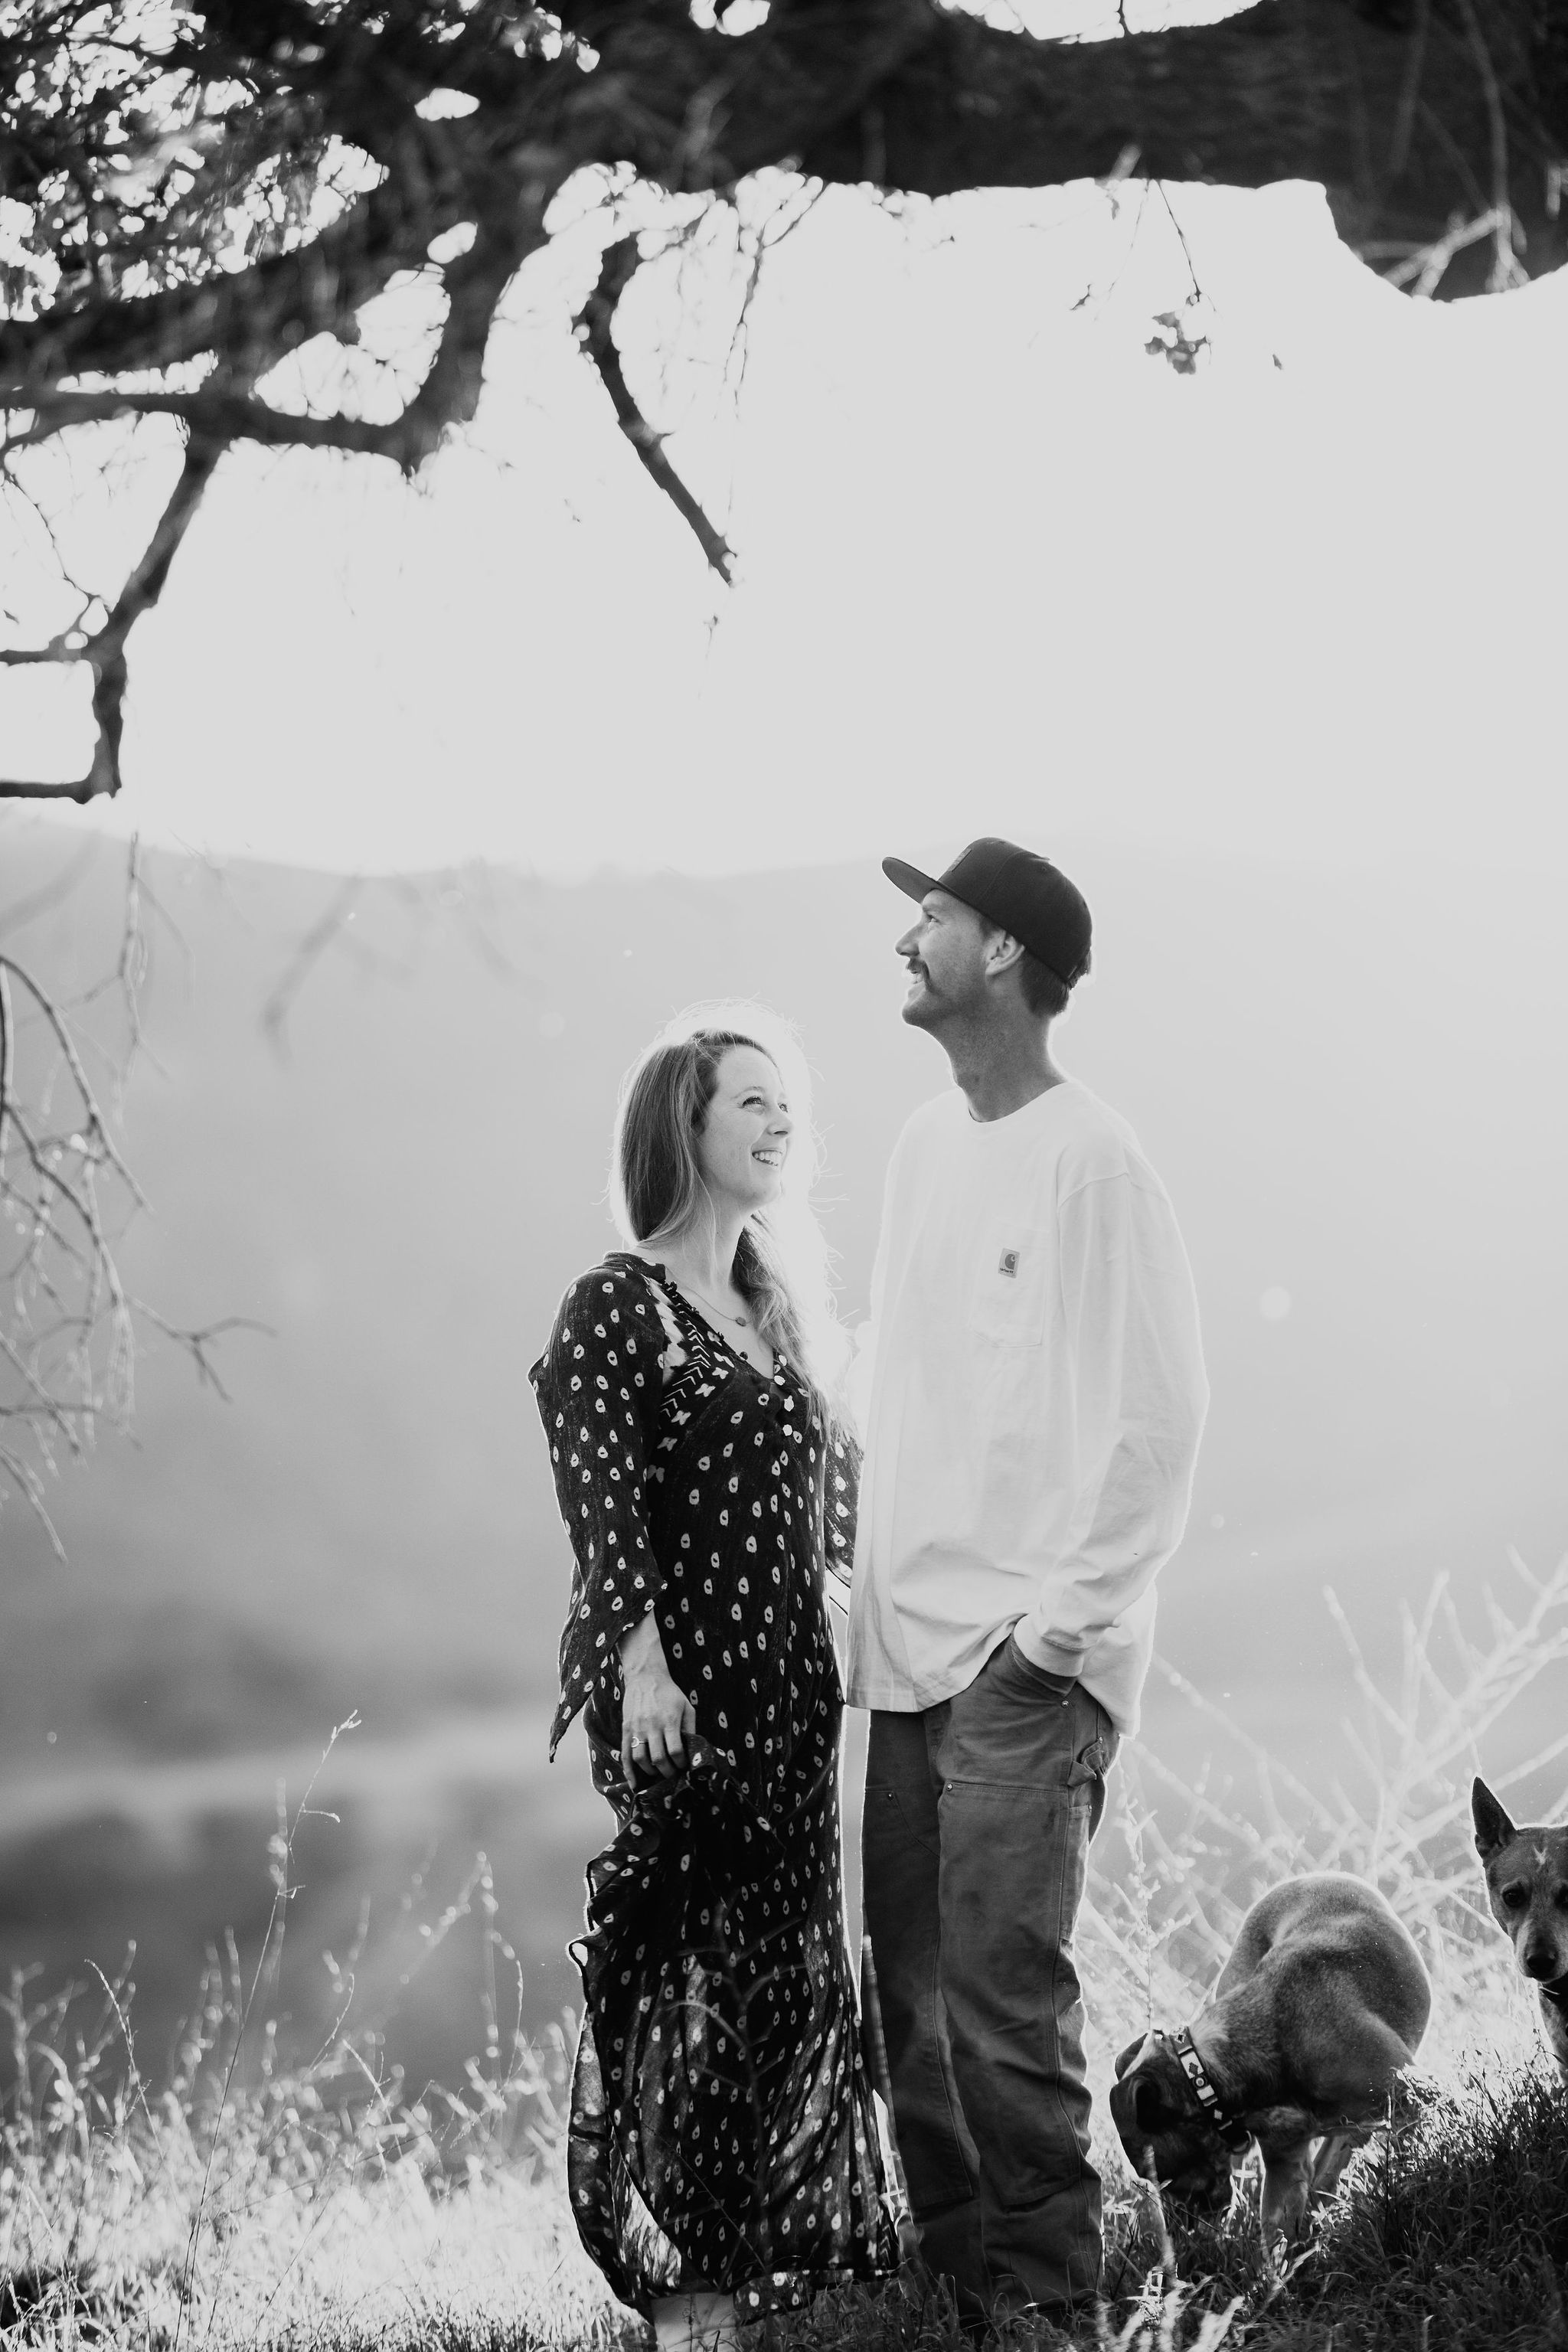 OjaiEngagementSession_Geoff&LyndsiPhotography_Eveline&Scotty78.jpg